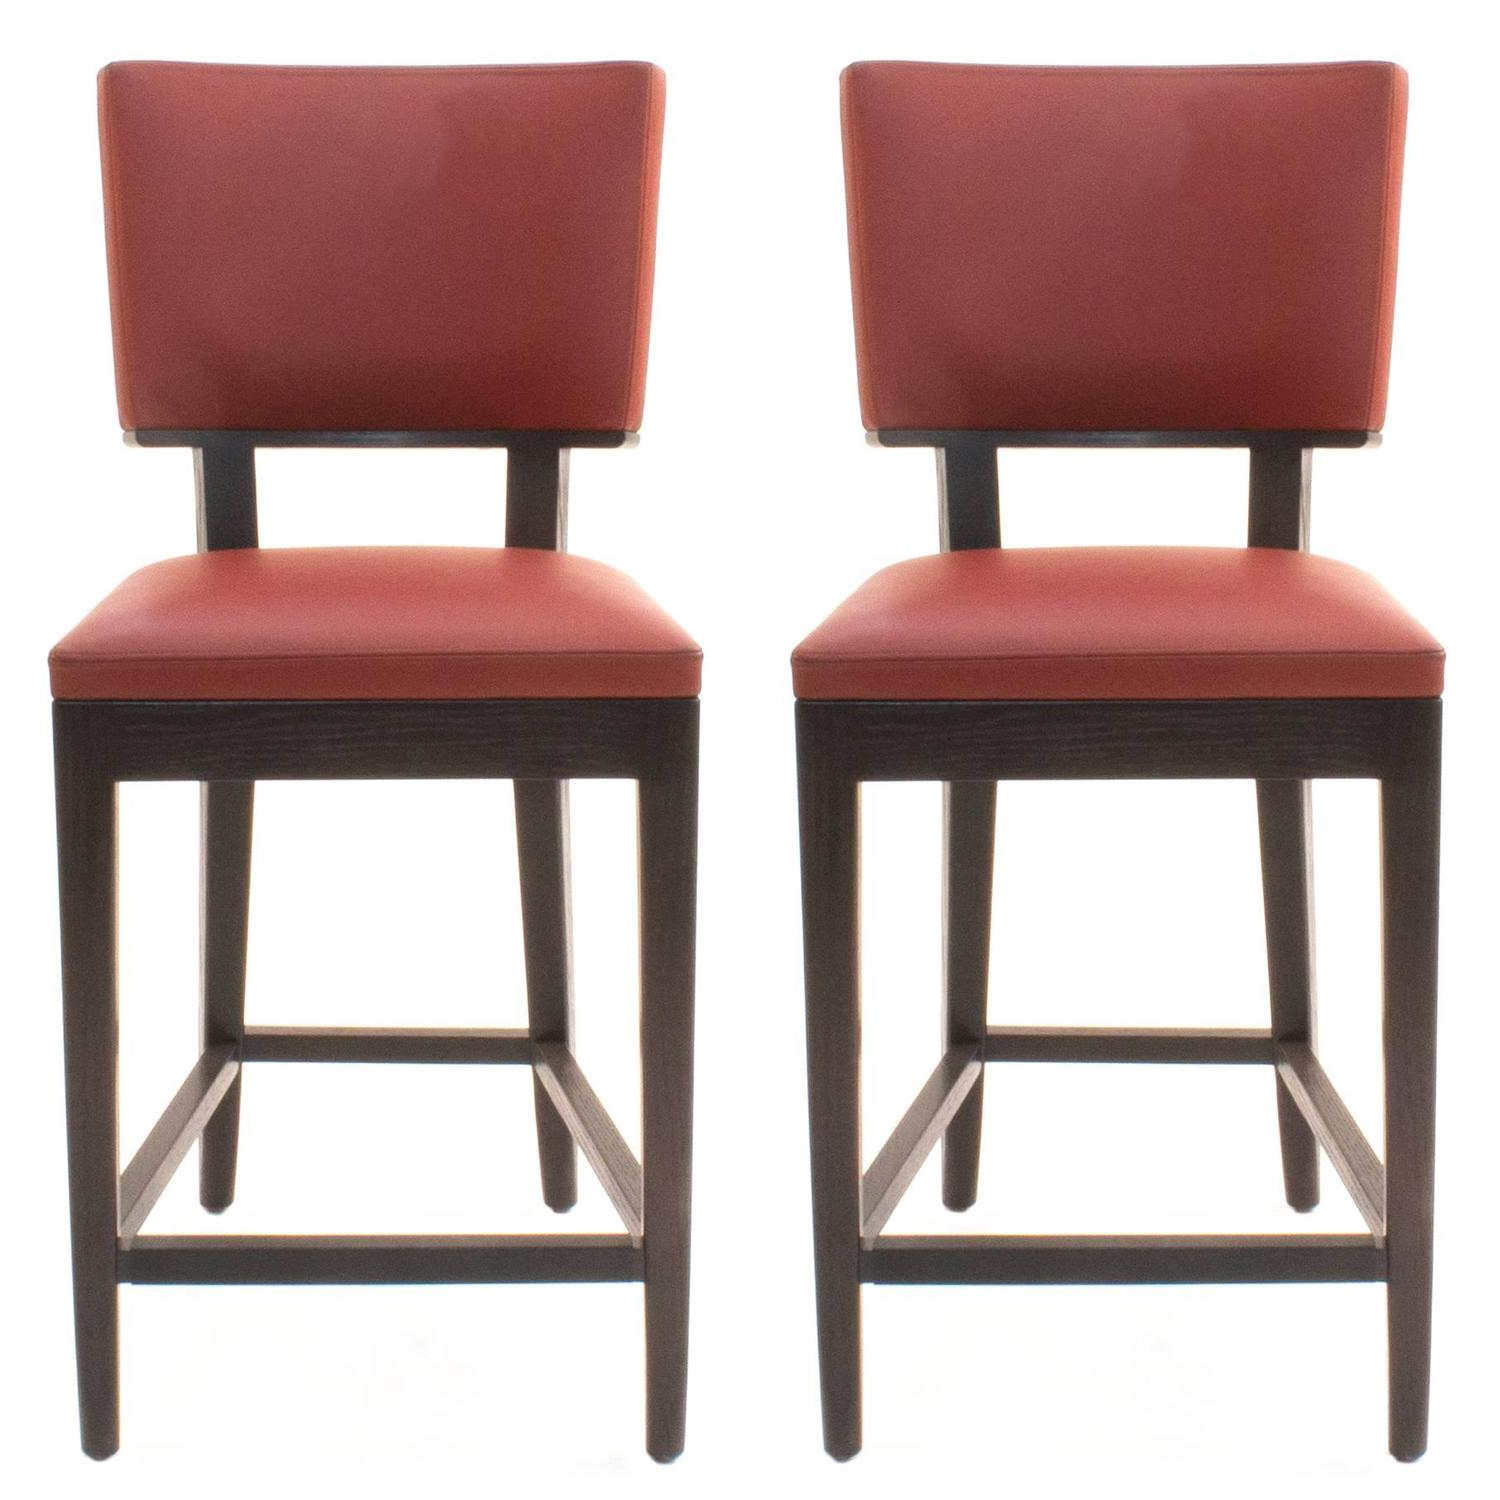 back swivel backs chairs and chair arms upholstered wooden stunning red leather bar marvellous interior stool with engaging winsome stools armrest seat astounding